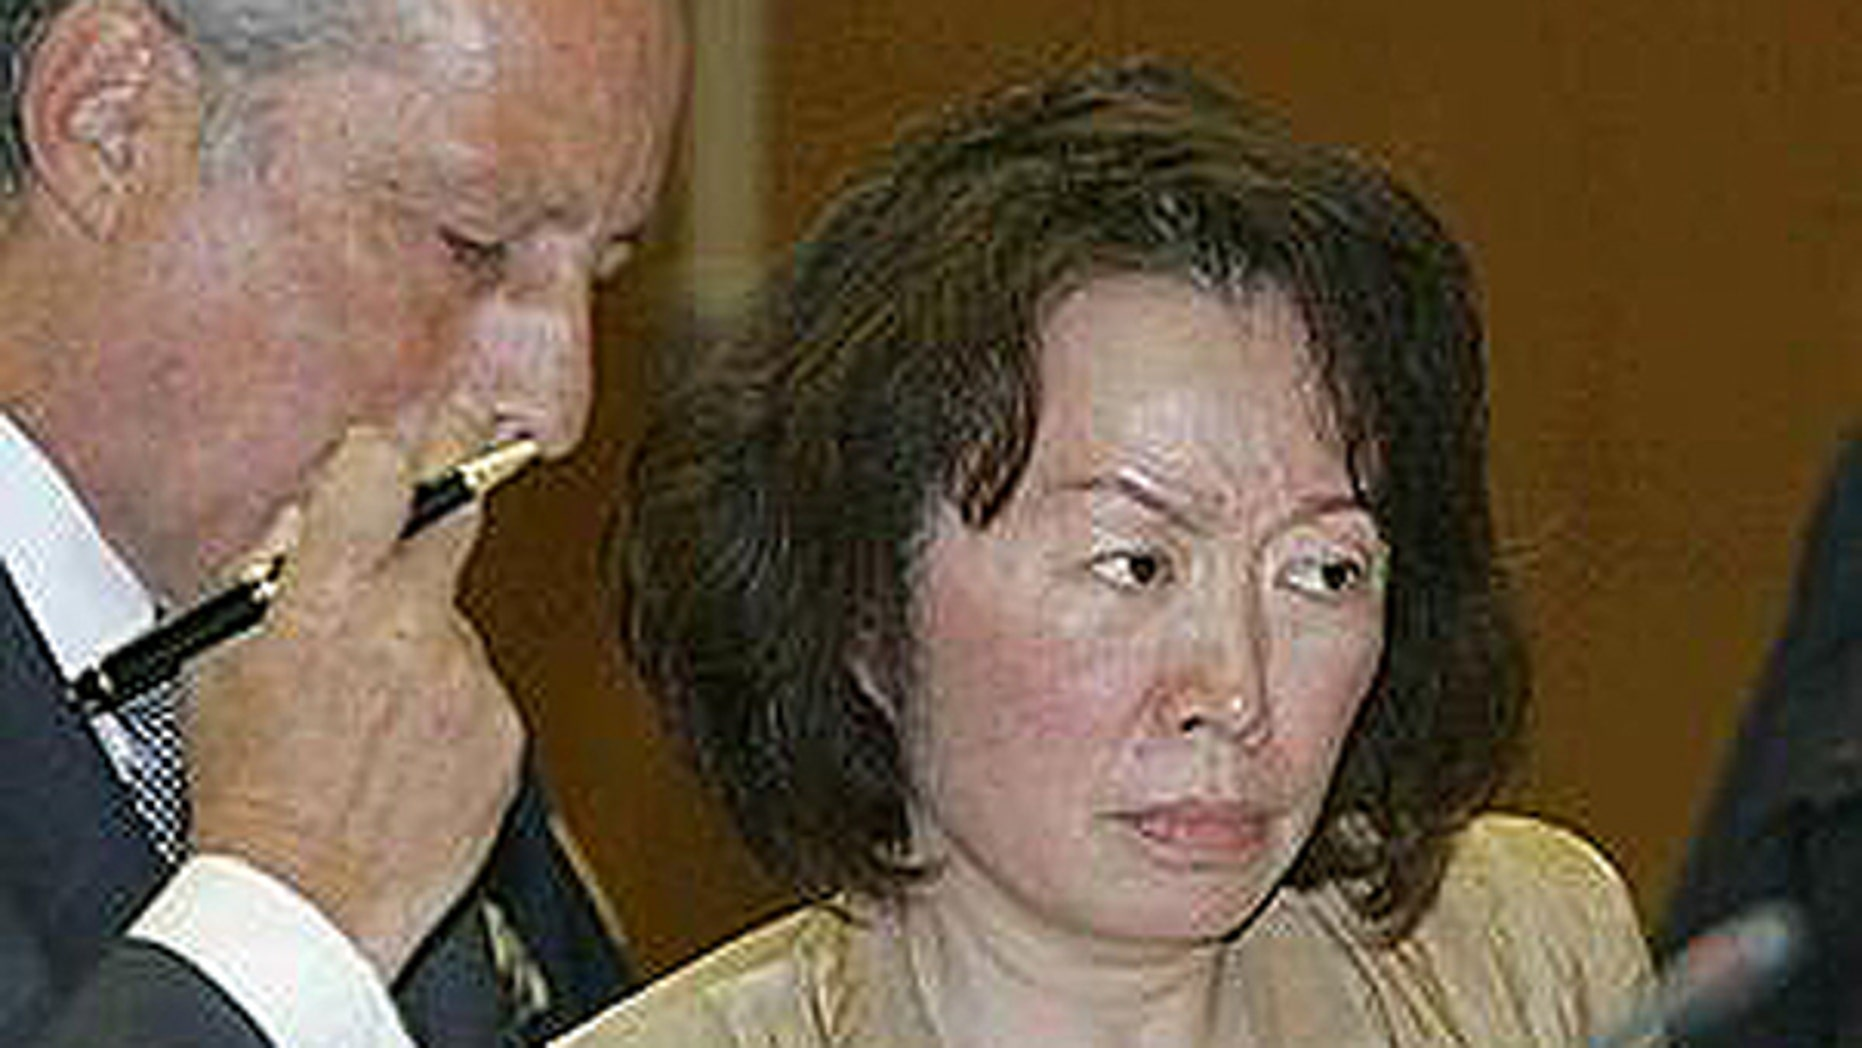 Sept. 16: Former St. John's University Dean Cecilia Chang is pictured here with her lawyer at her arraignment. Chang was arrainged on charges that she charges she embezzled more than $1 million for jaunts to casinos and Victoria's Secret shopping sprees.